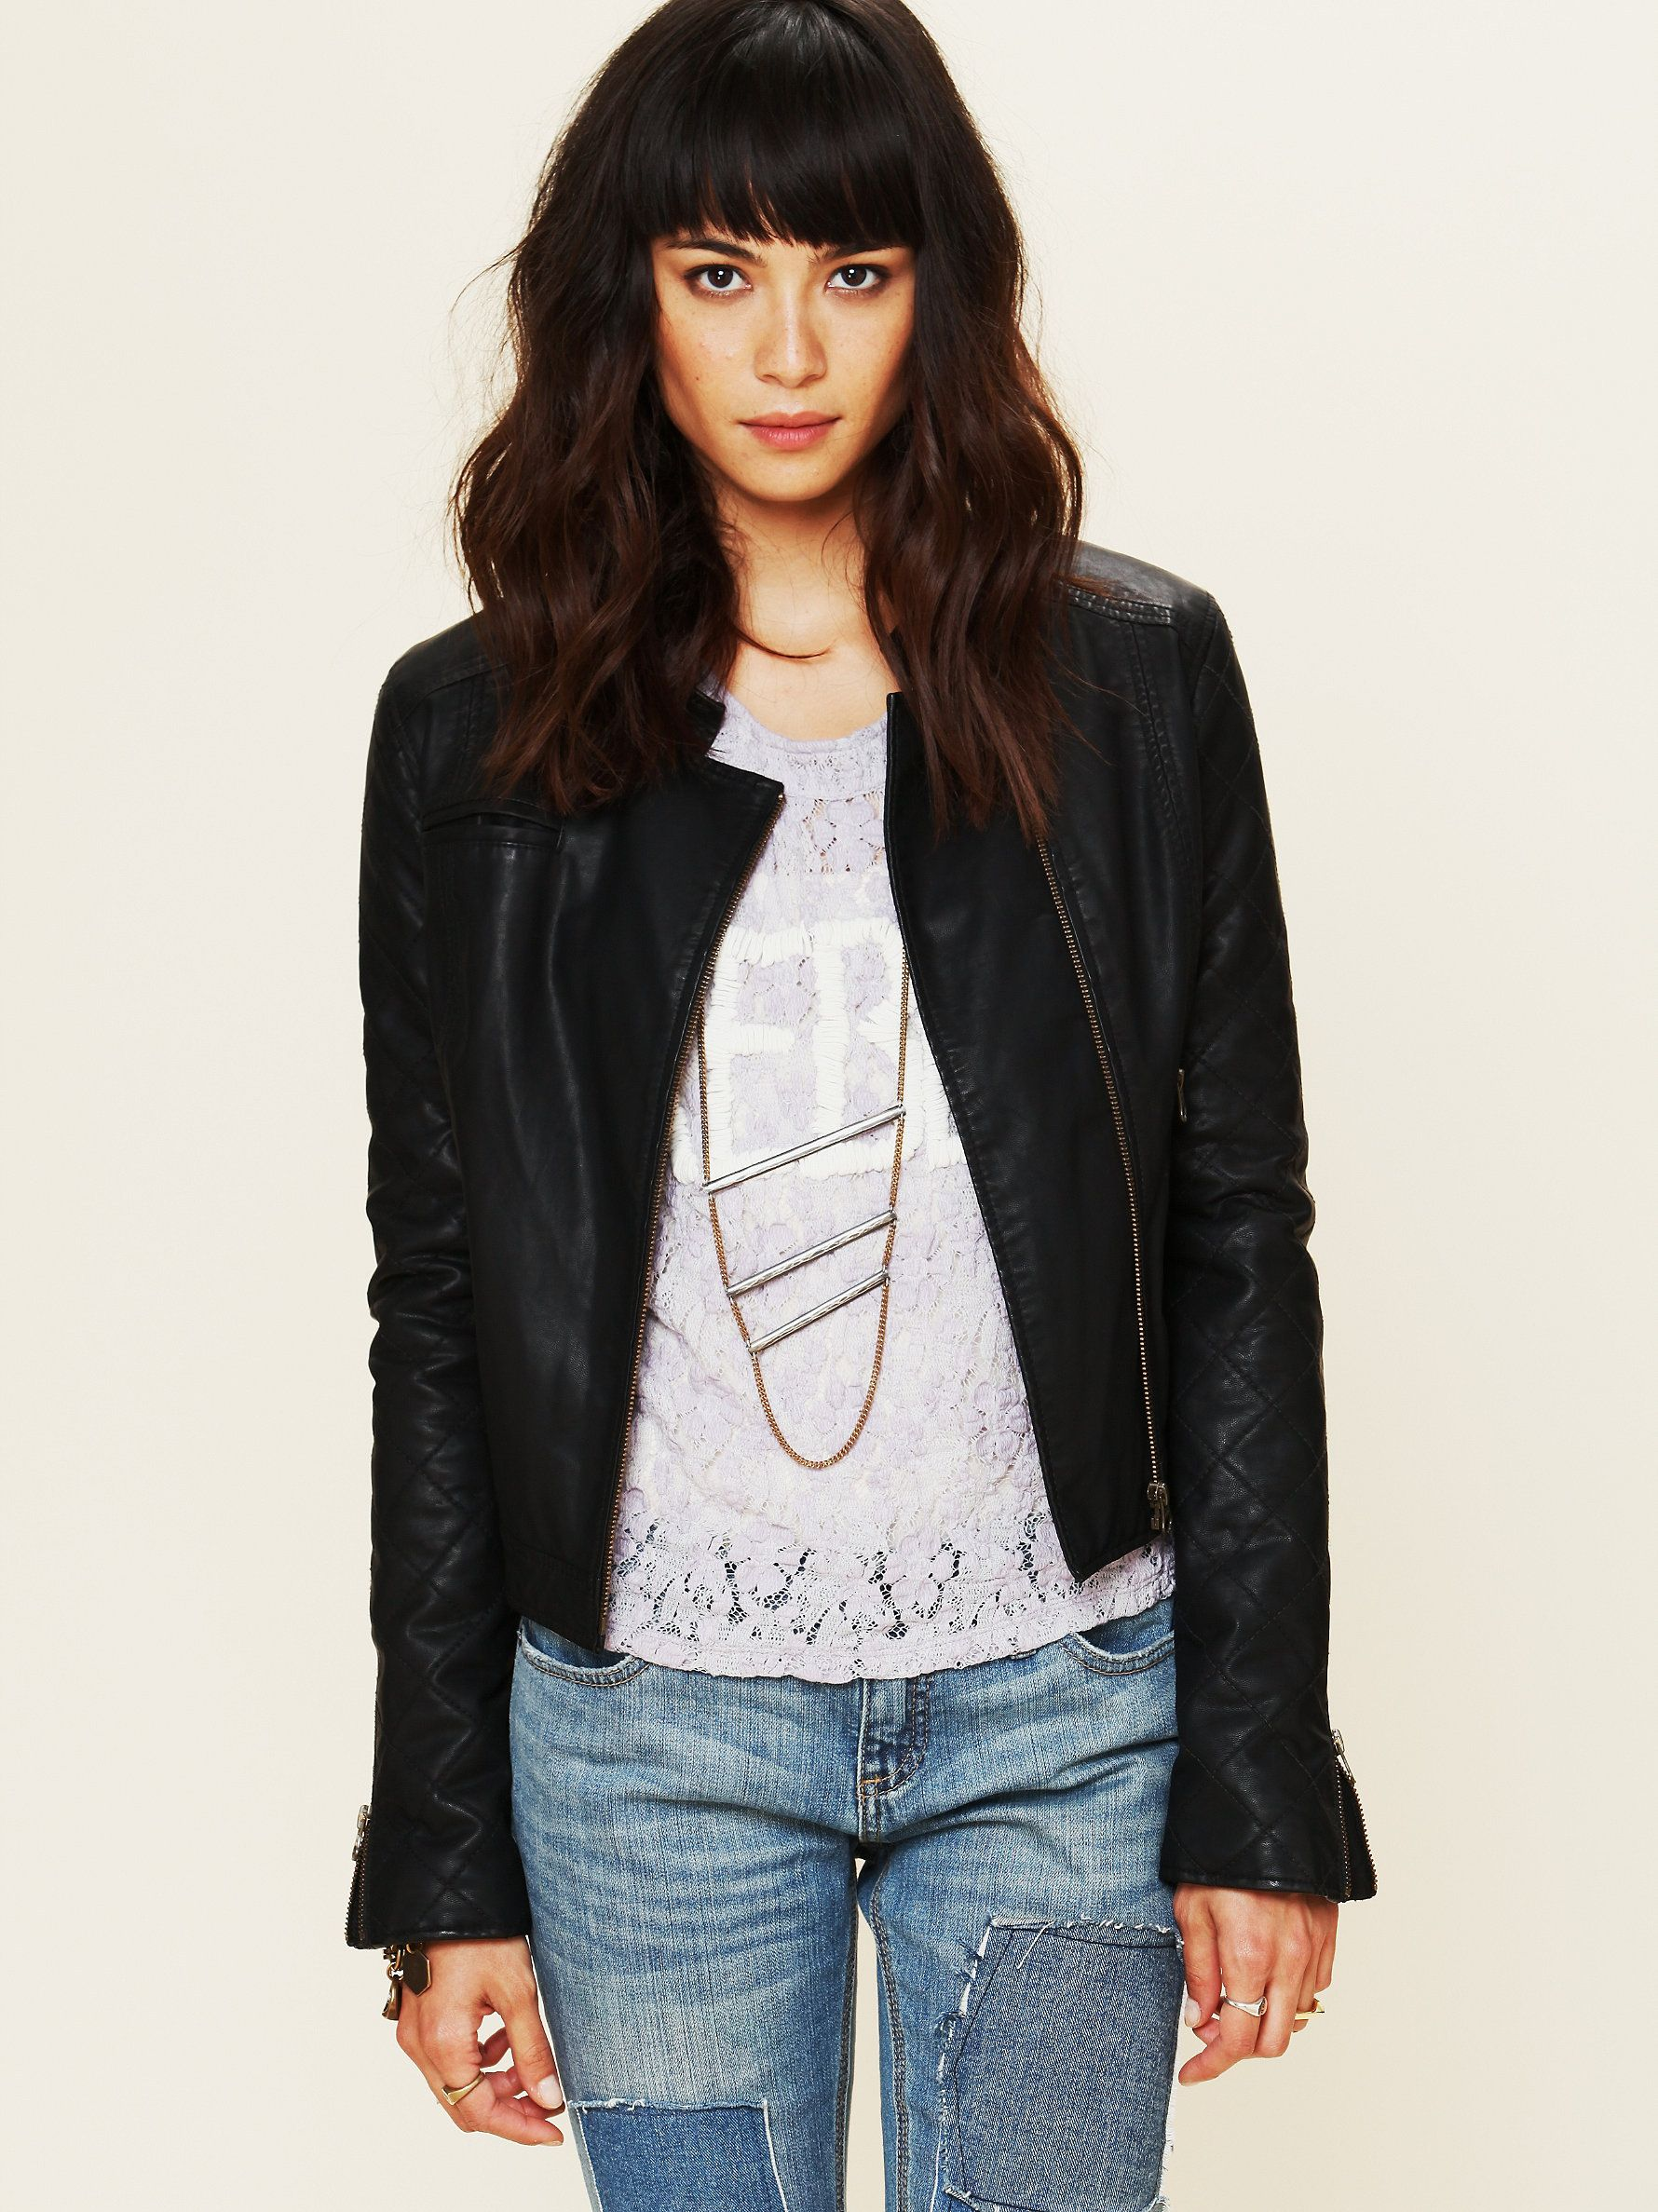 Free People Quilted Sleeve Vegan Leather Jacket At Free People Clothing Boutique 168 Vegan Leather Jacket Quilted Sleeves Leather Jacket